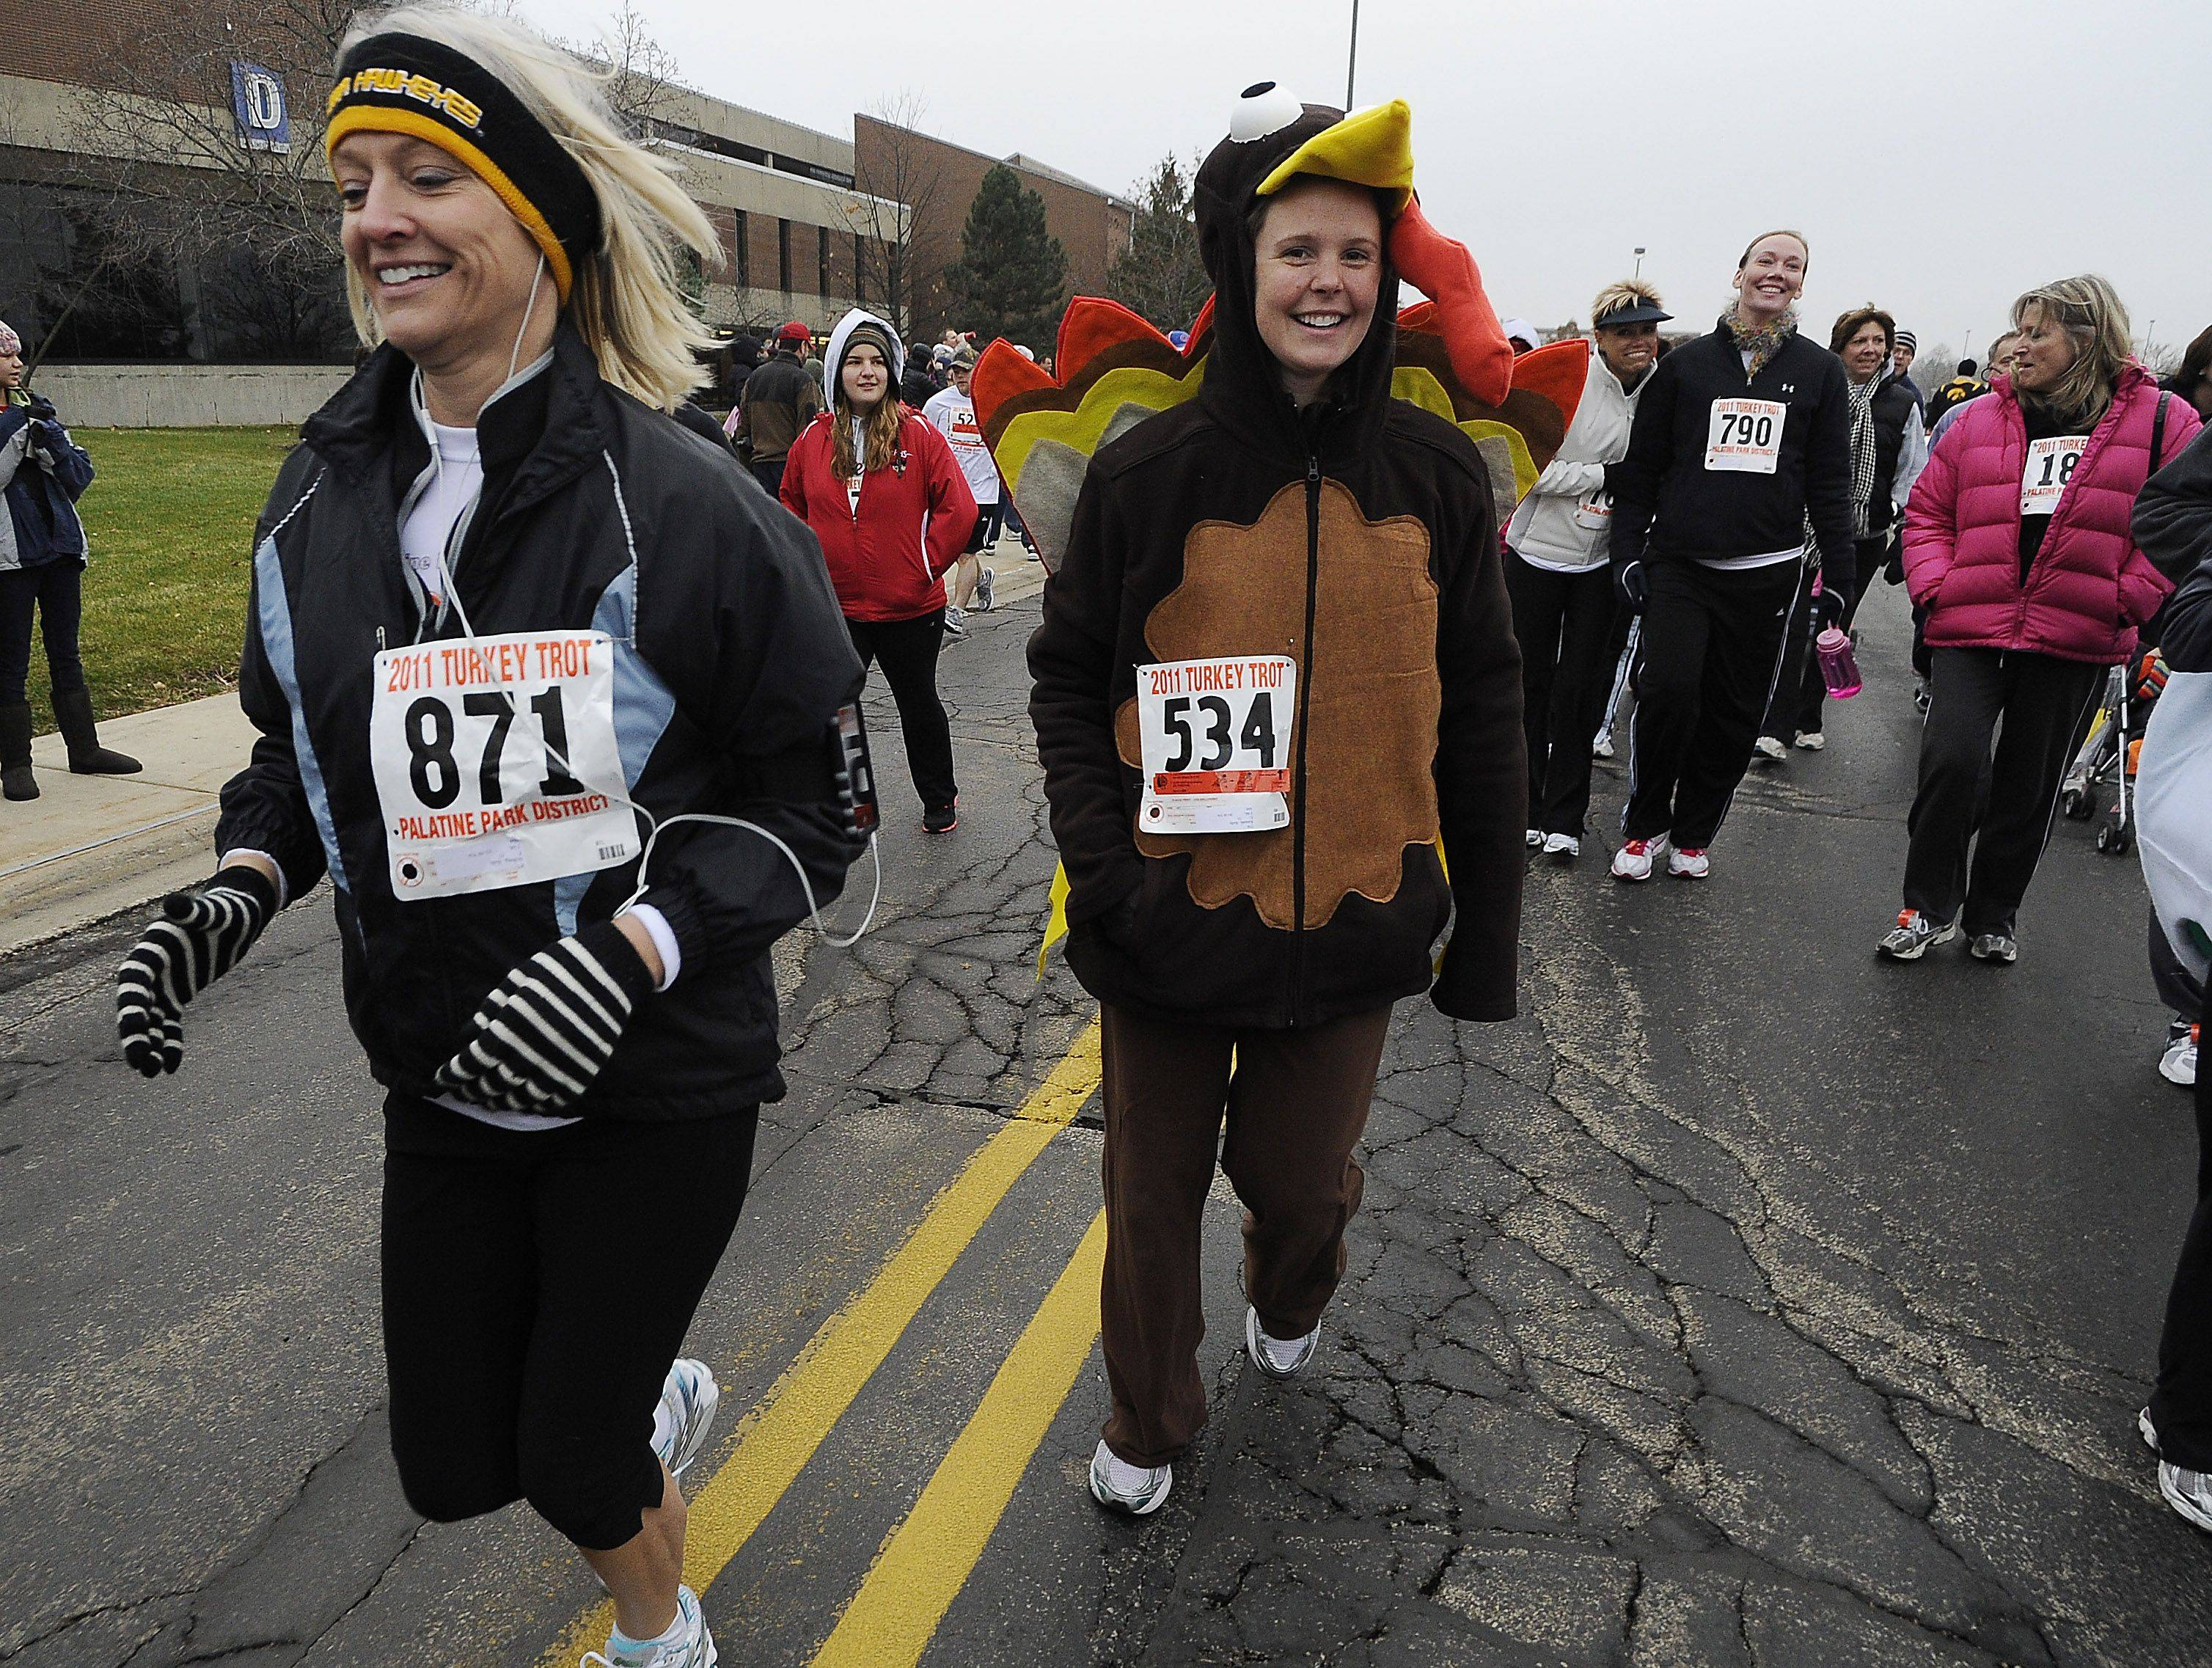 The Palatine Turkey Trot 2-mile run begins at Harper College with hundreds of runners of all ages including Kelly Ksiazek ,31, of Palatine dressed to add a bit of humor to the race.